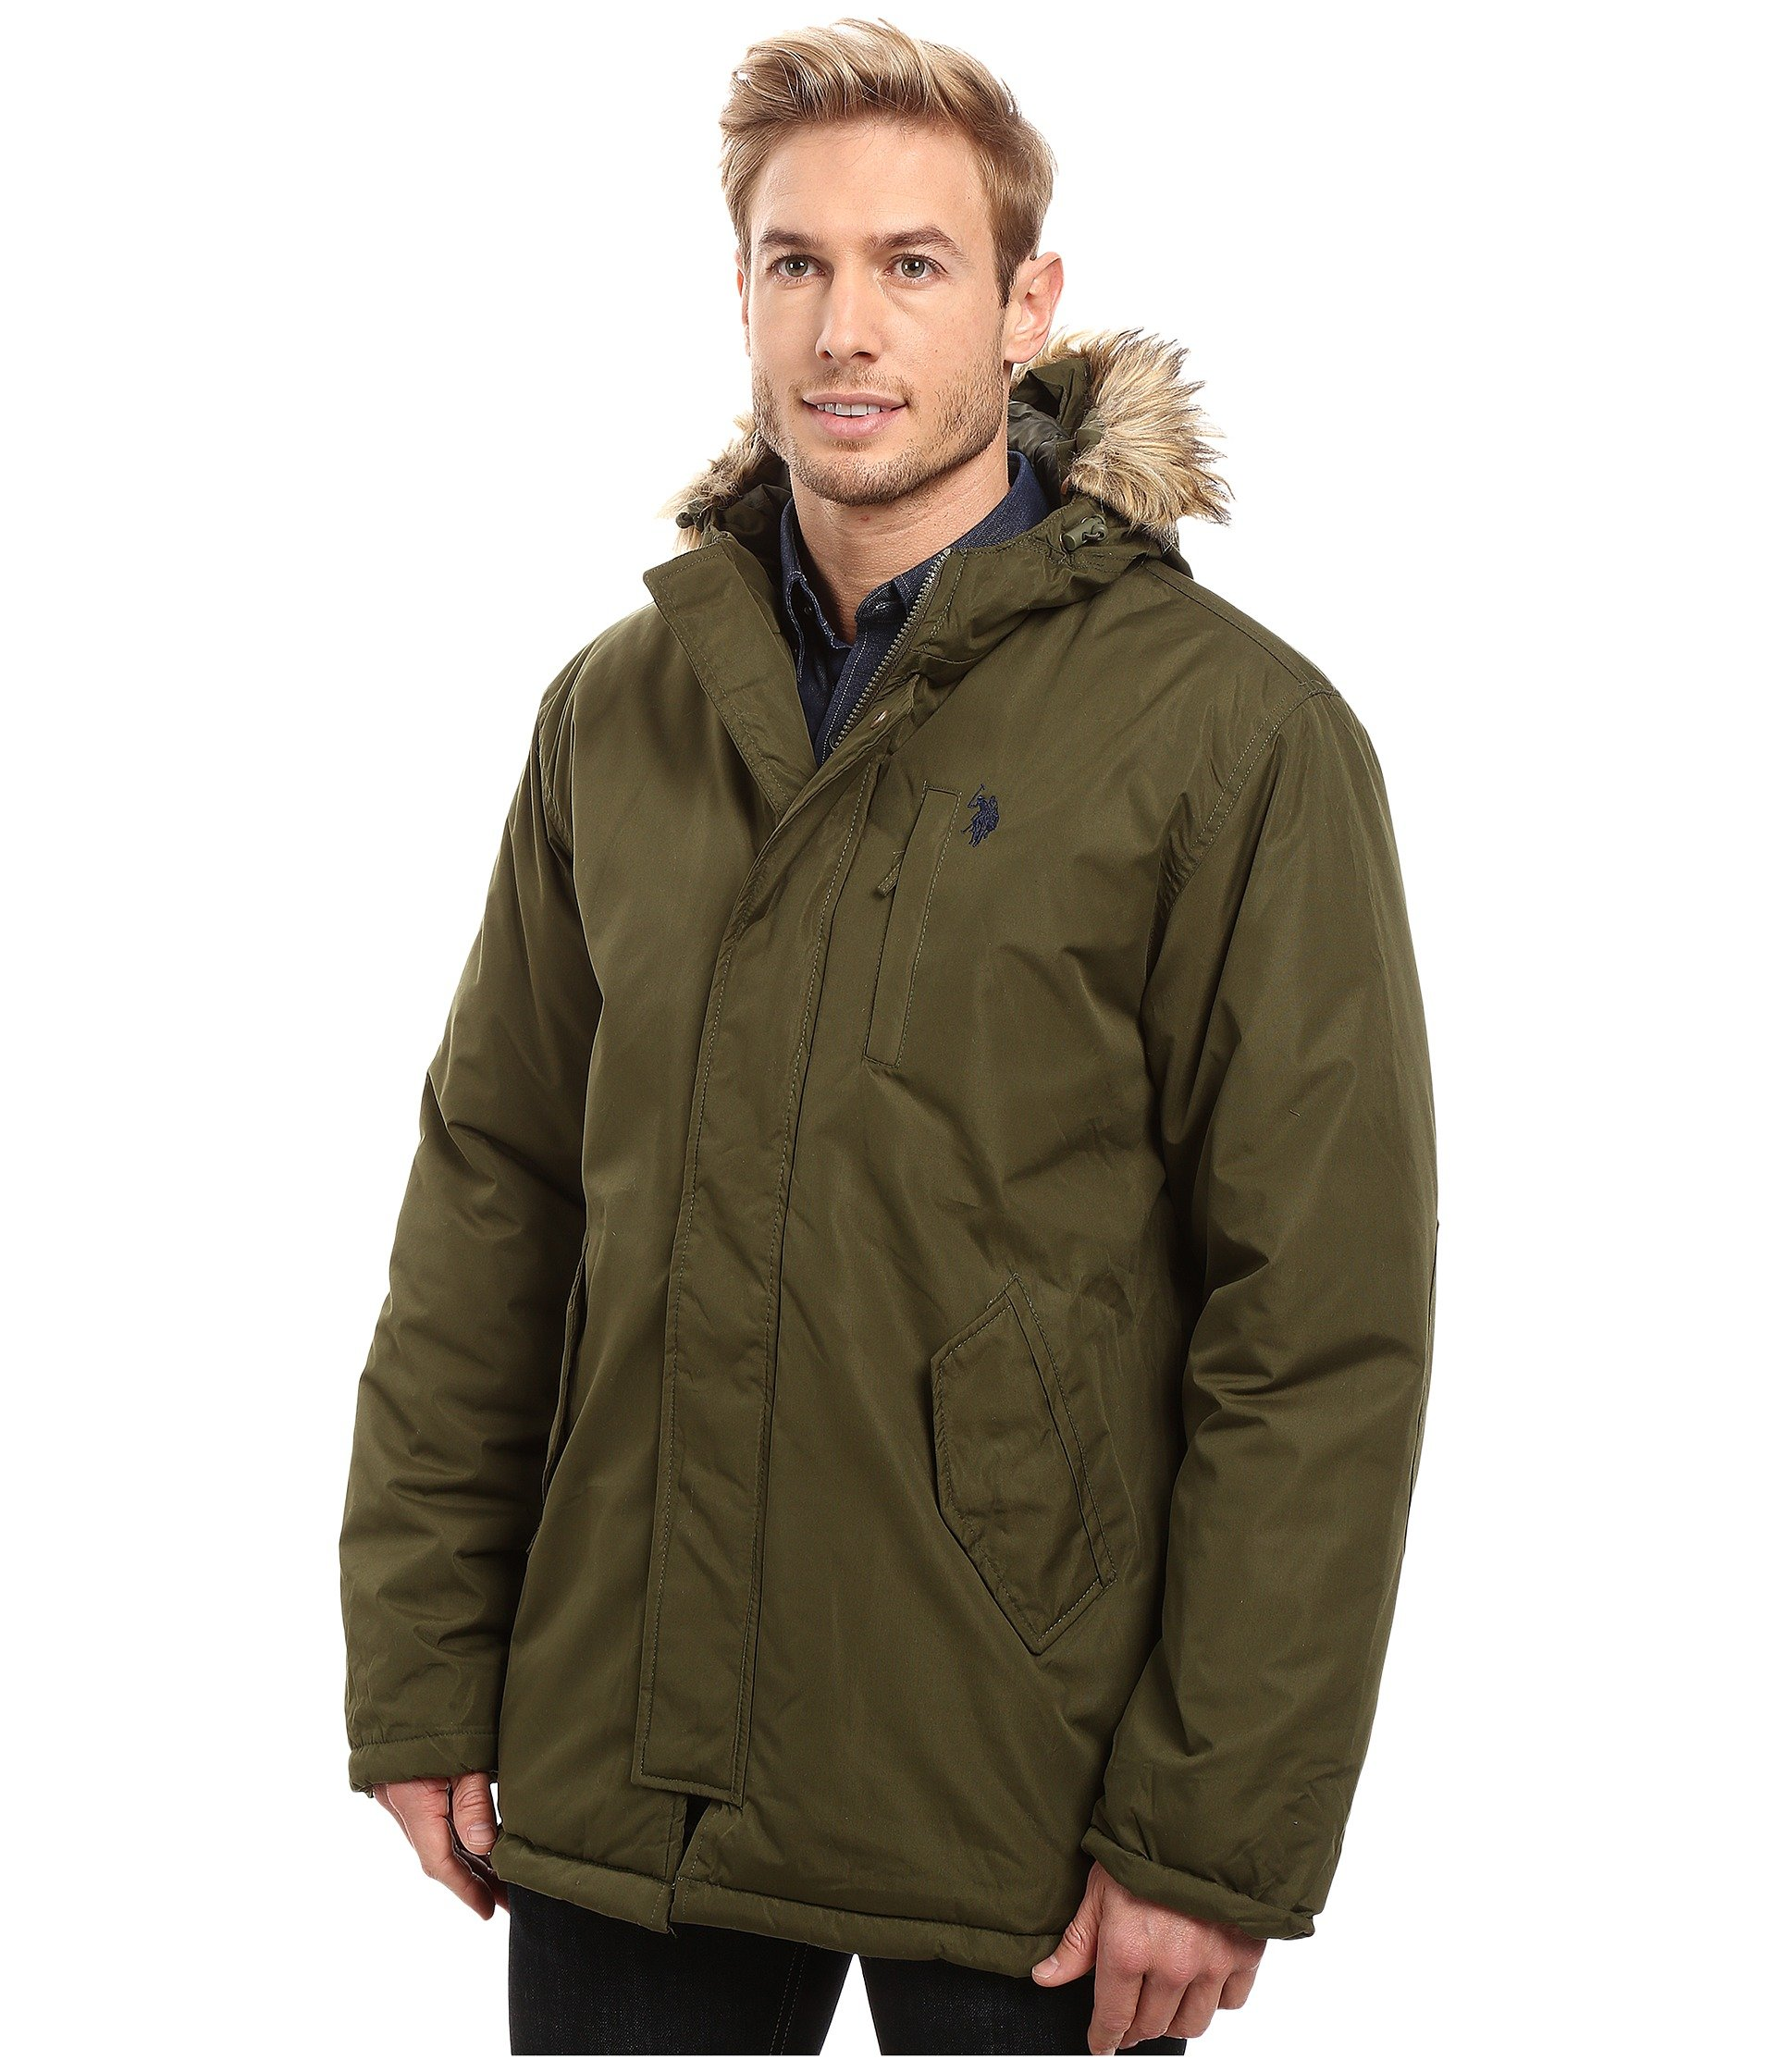 U.S. POLO ASSN. Faux Fur Hooded Parka Jacket at 6pm